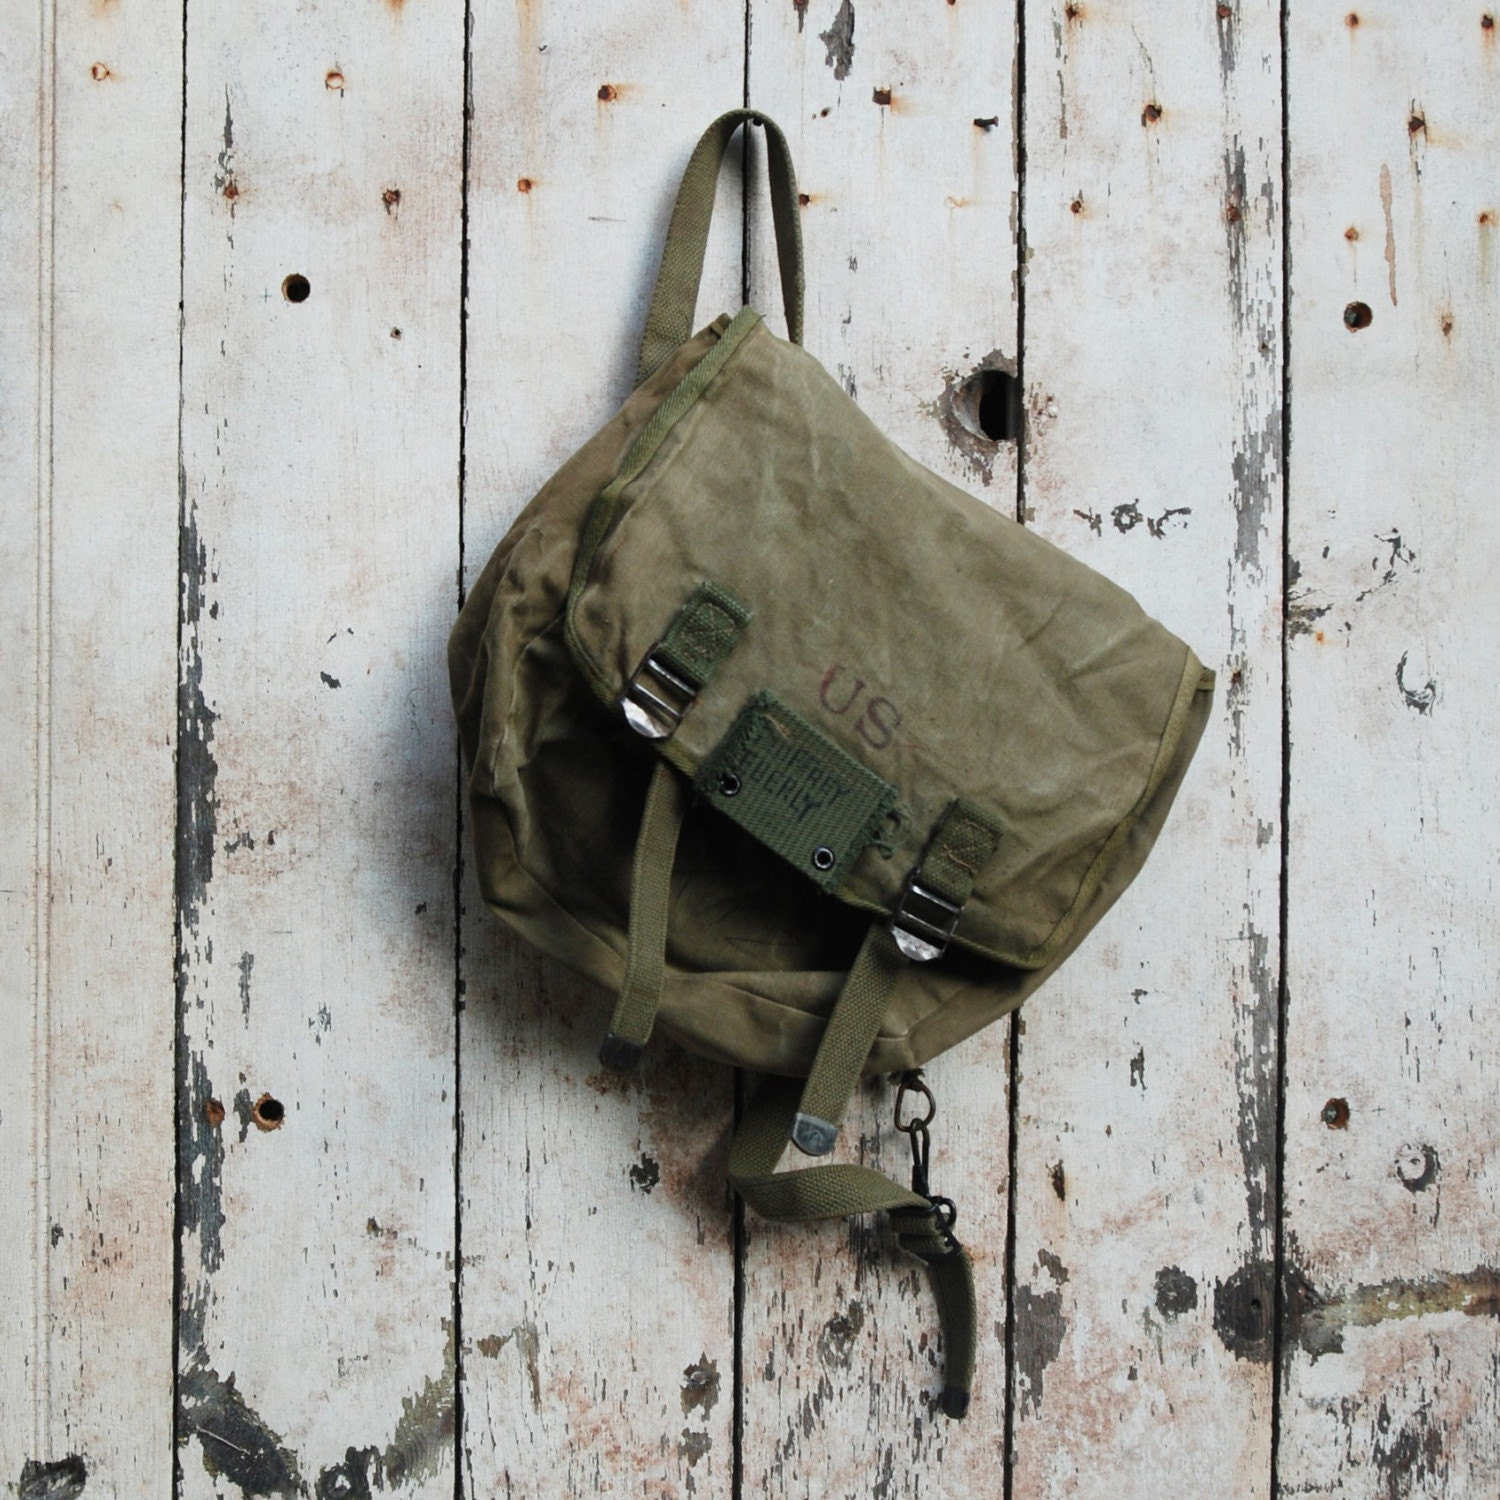 WWII Era small backpack once belonging to Geoffrey Eberly, US